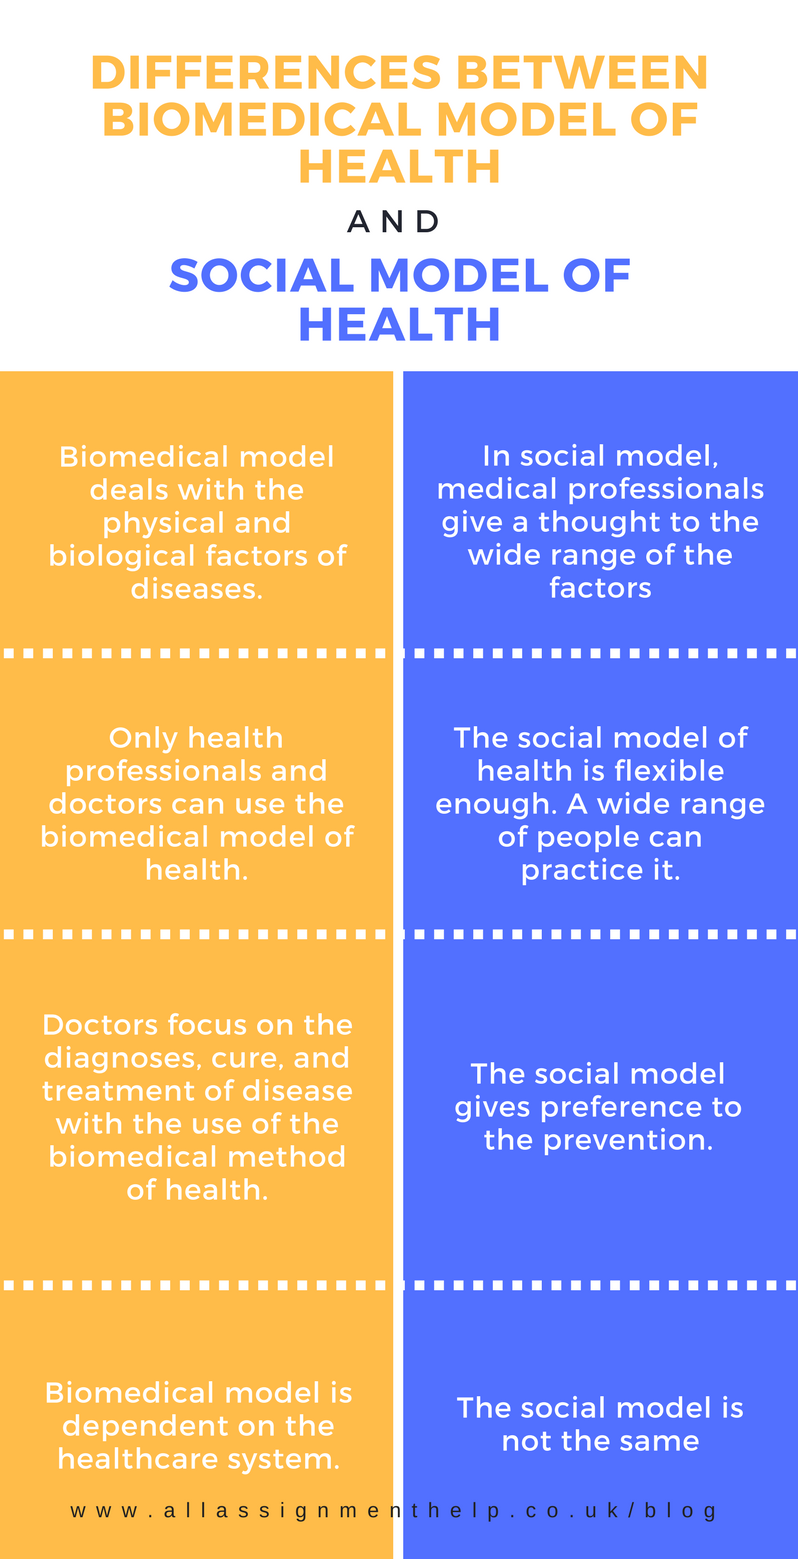 Biomedical model of health